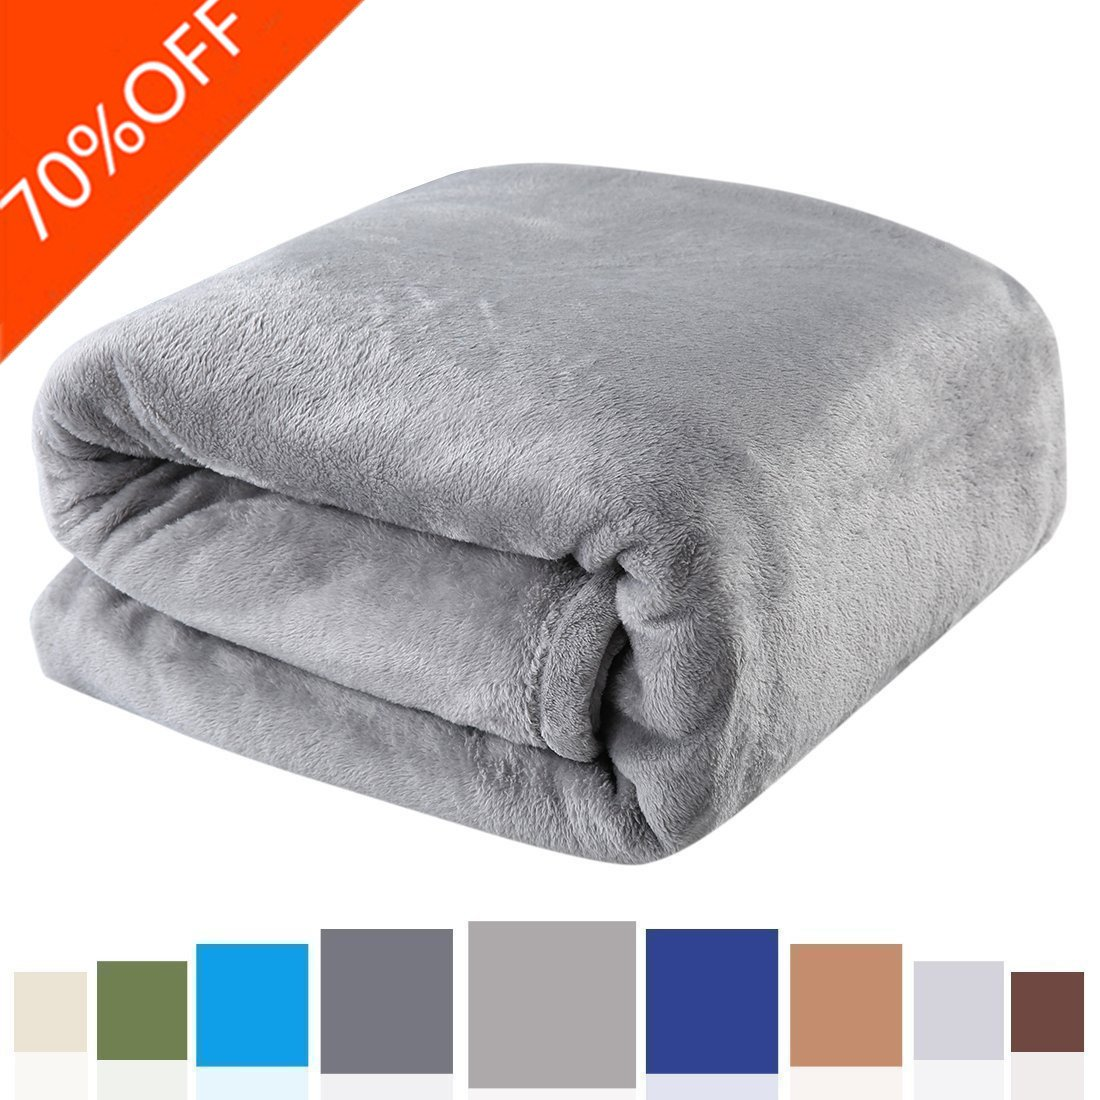 Balichun Luxury 330 GSM Fleece Bed Blanket Super Soft Warm Fuzzy Lightweight Throw or Couch Blanket Twin/Queen/King Size